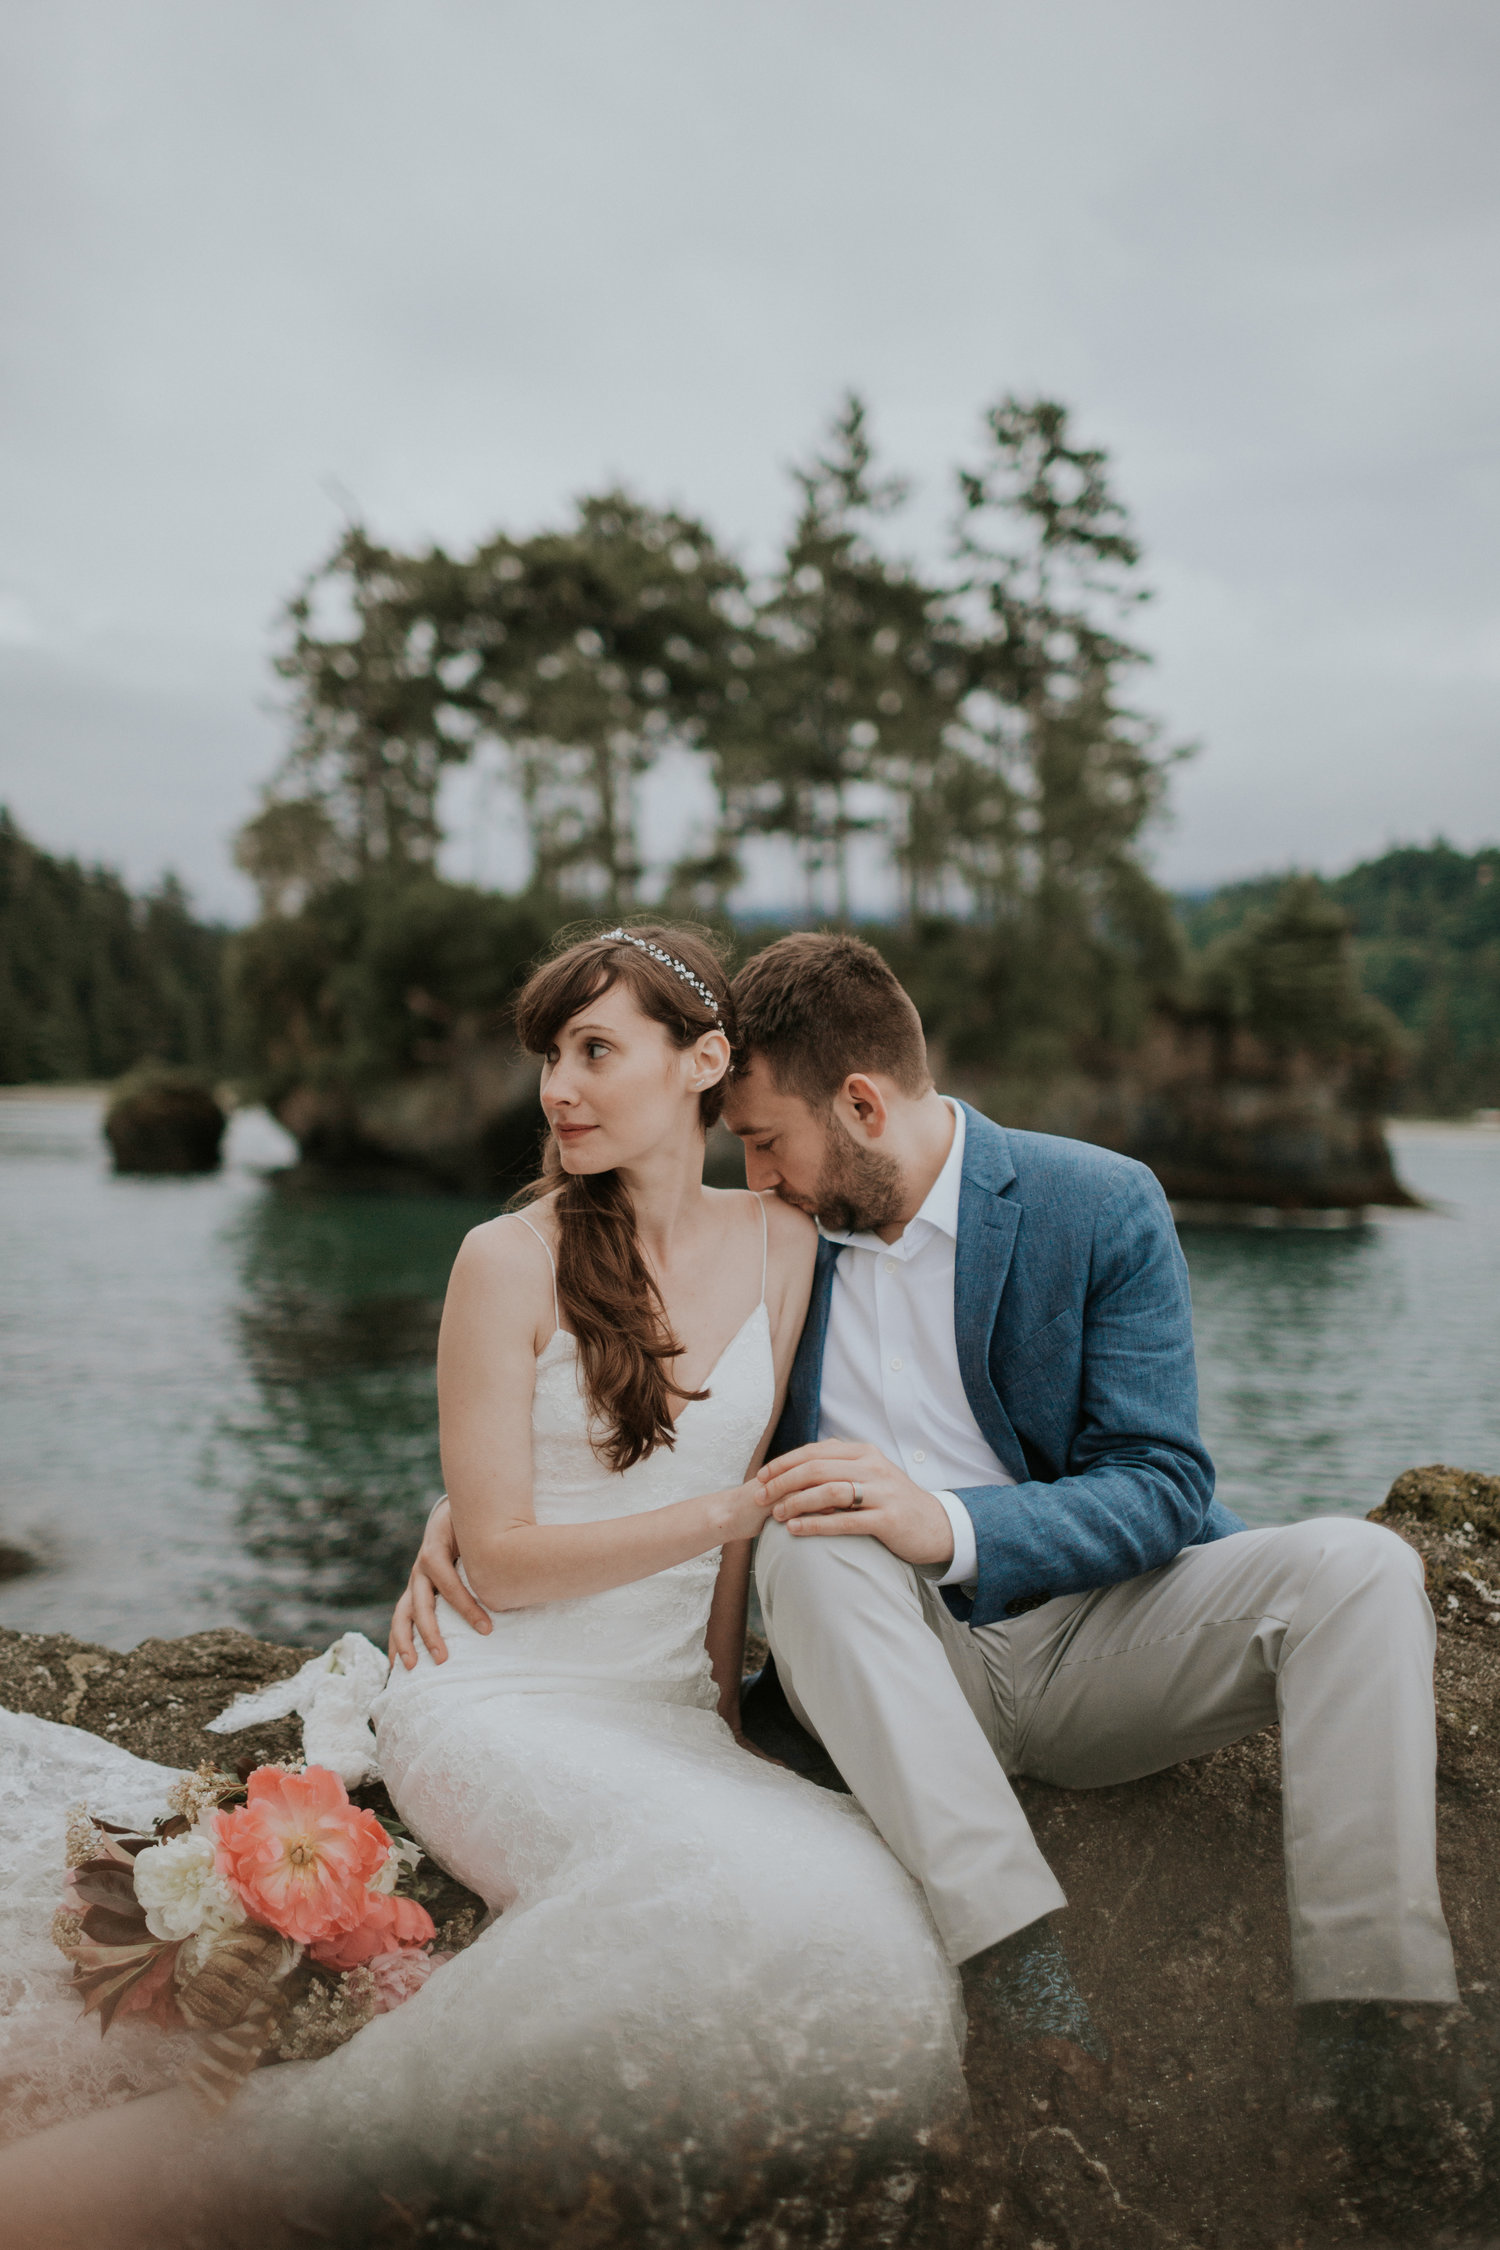 PNW-elopement-wedding-engagement-olympic+national+park-port+angeles-hurricane+ridge-lake+crescent-kayla+dawn+photography-+photographer-photography-kayladawnphoto-320.jpg